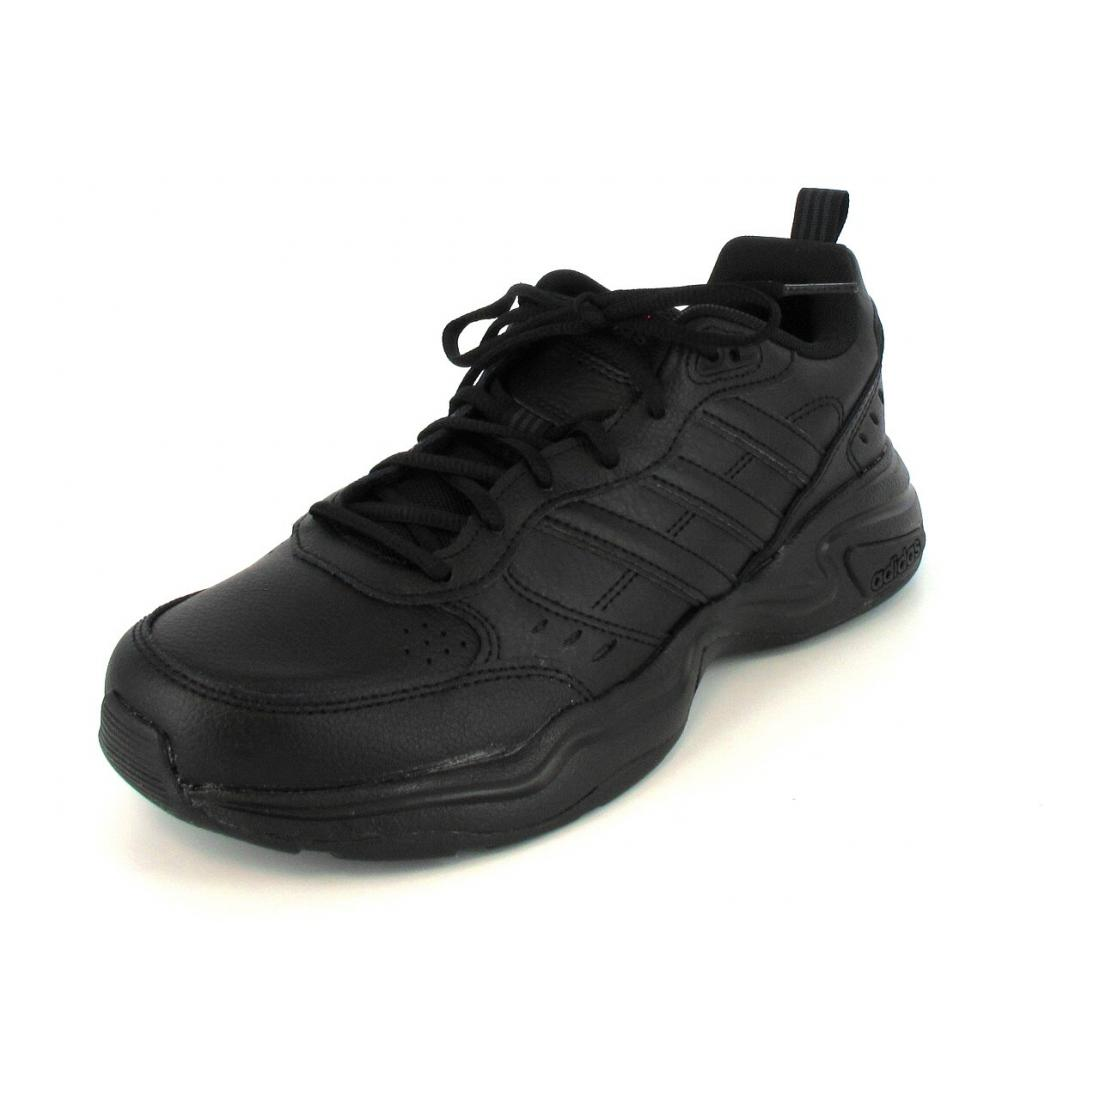 Asics Walkingschuh Gel-Mission 3